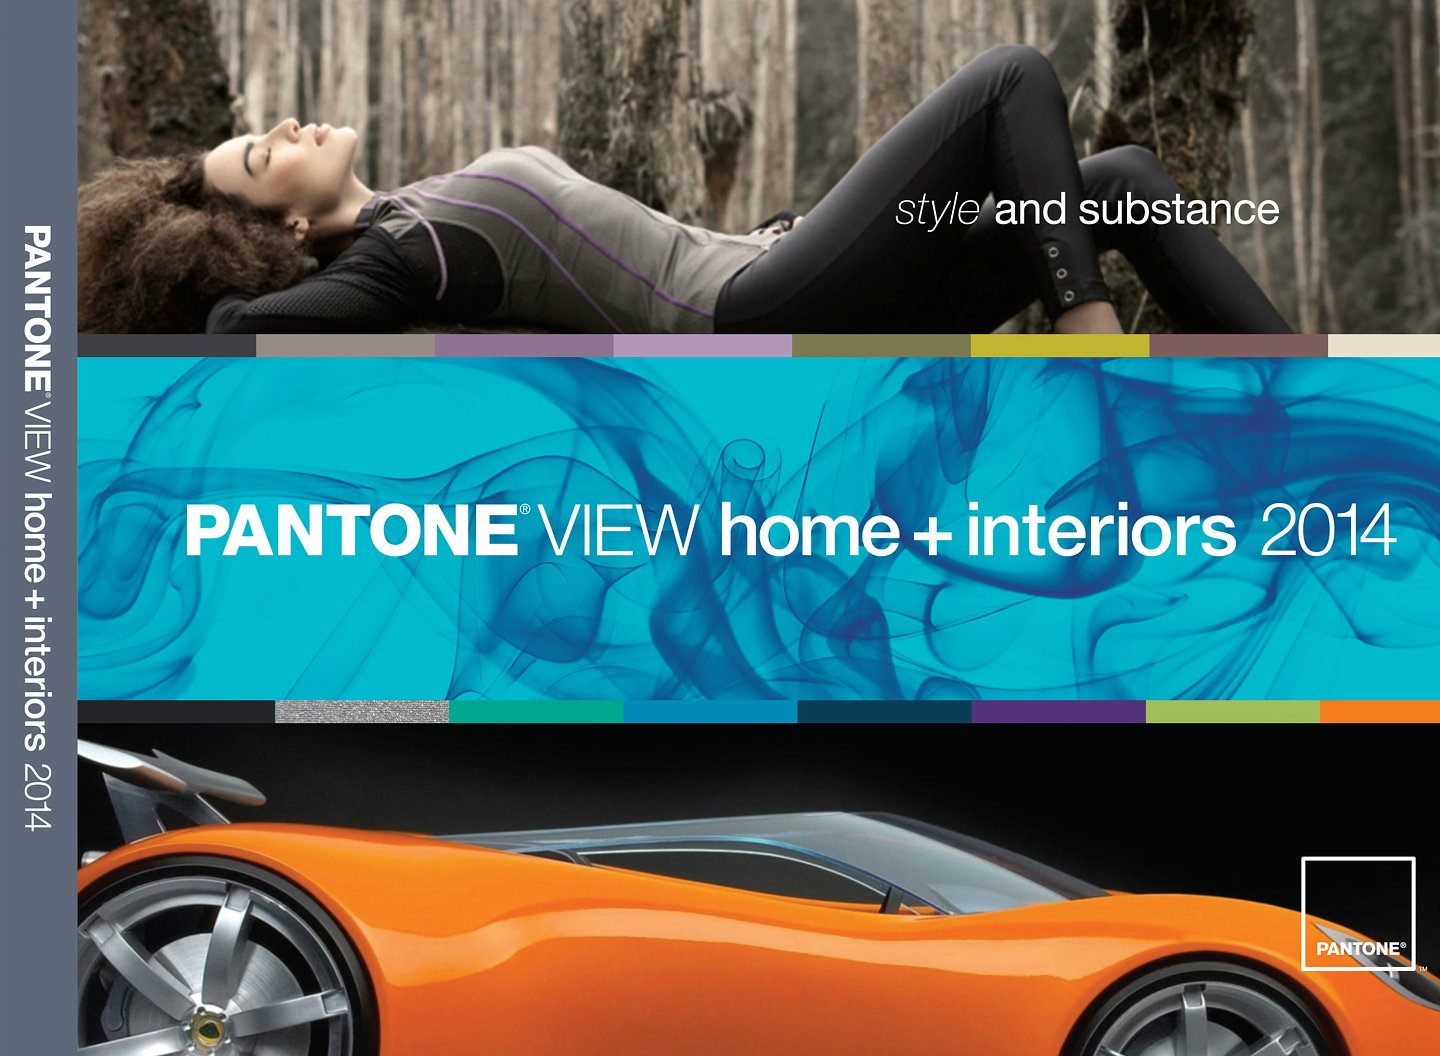 pantone view home interiors 2014 home interiors 2014 color trends trend home design and decor